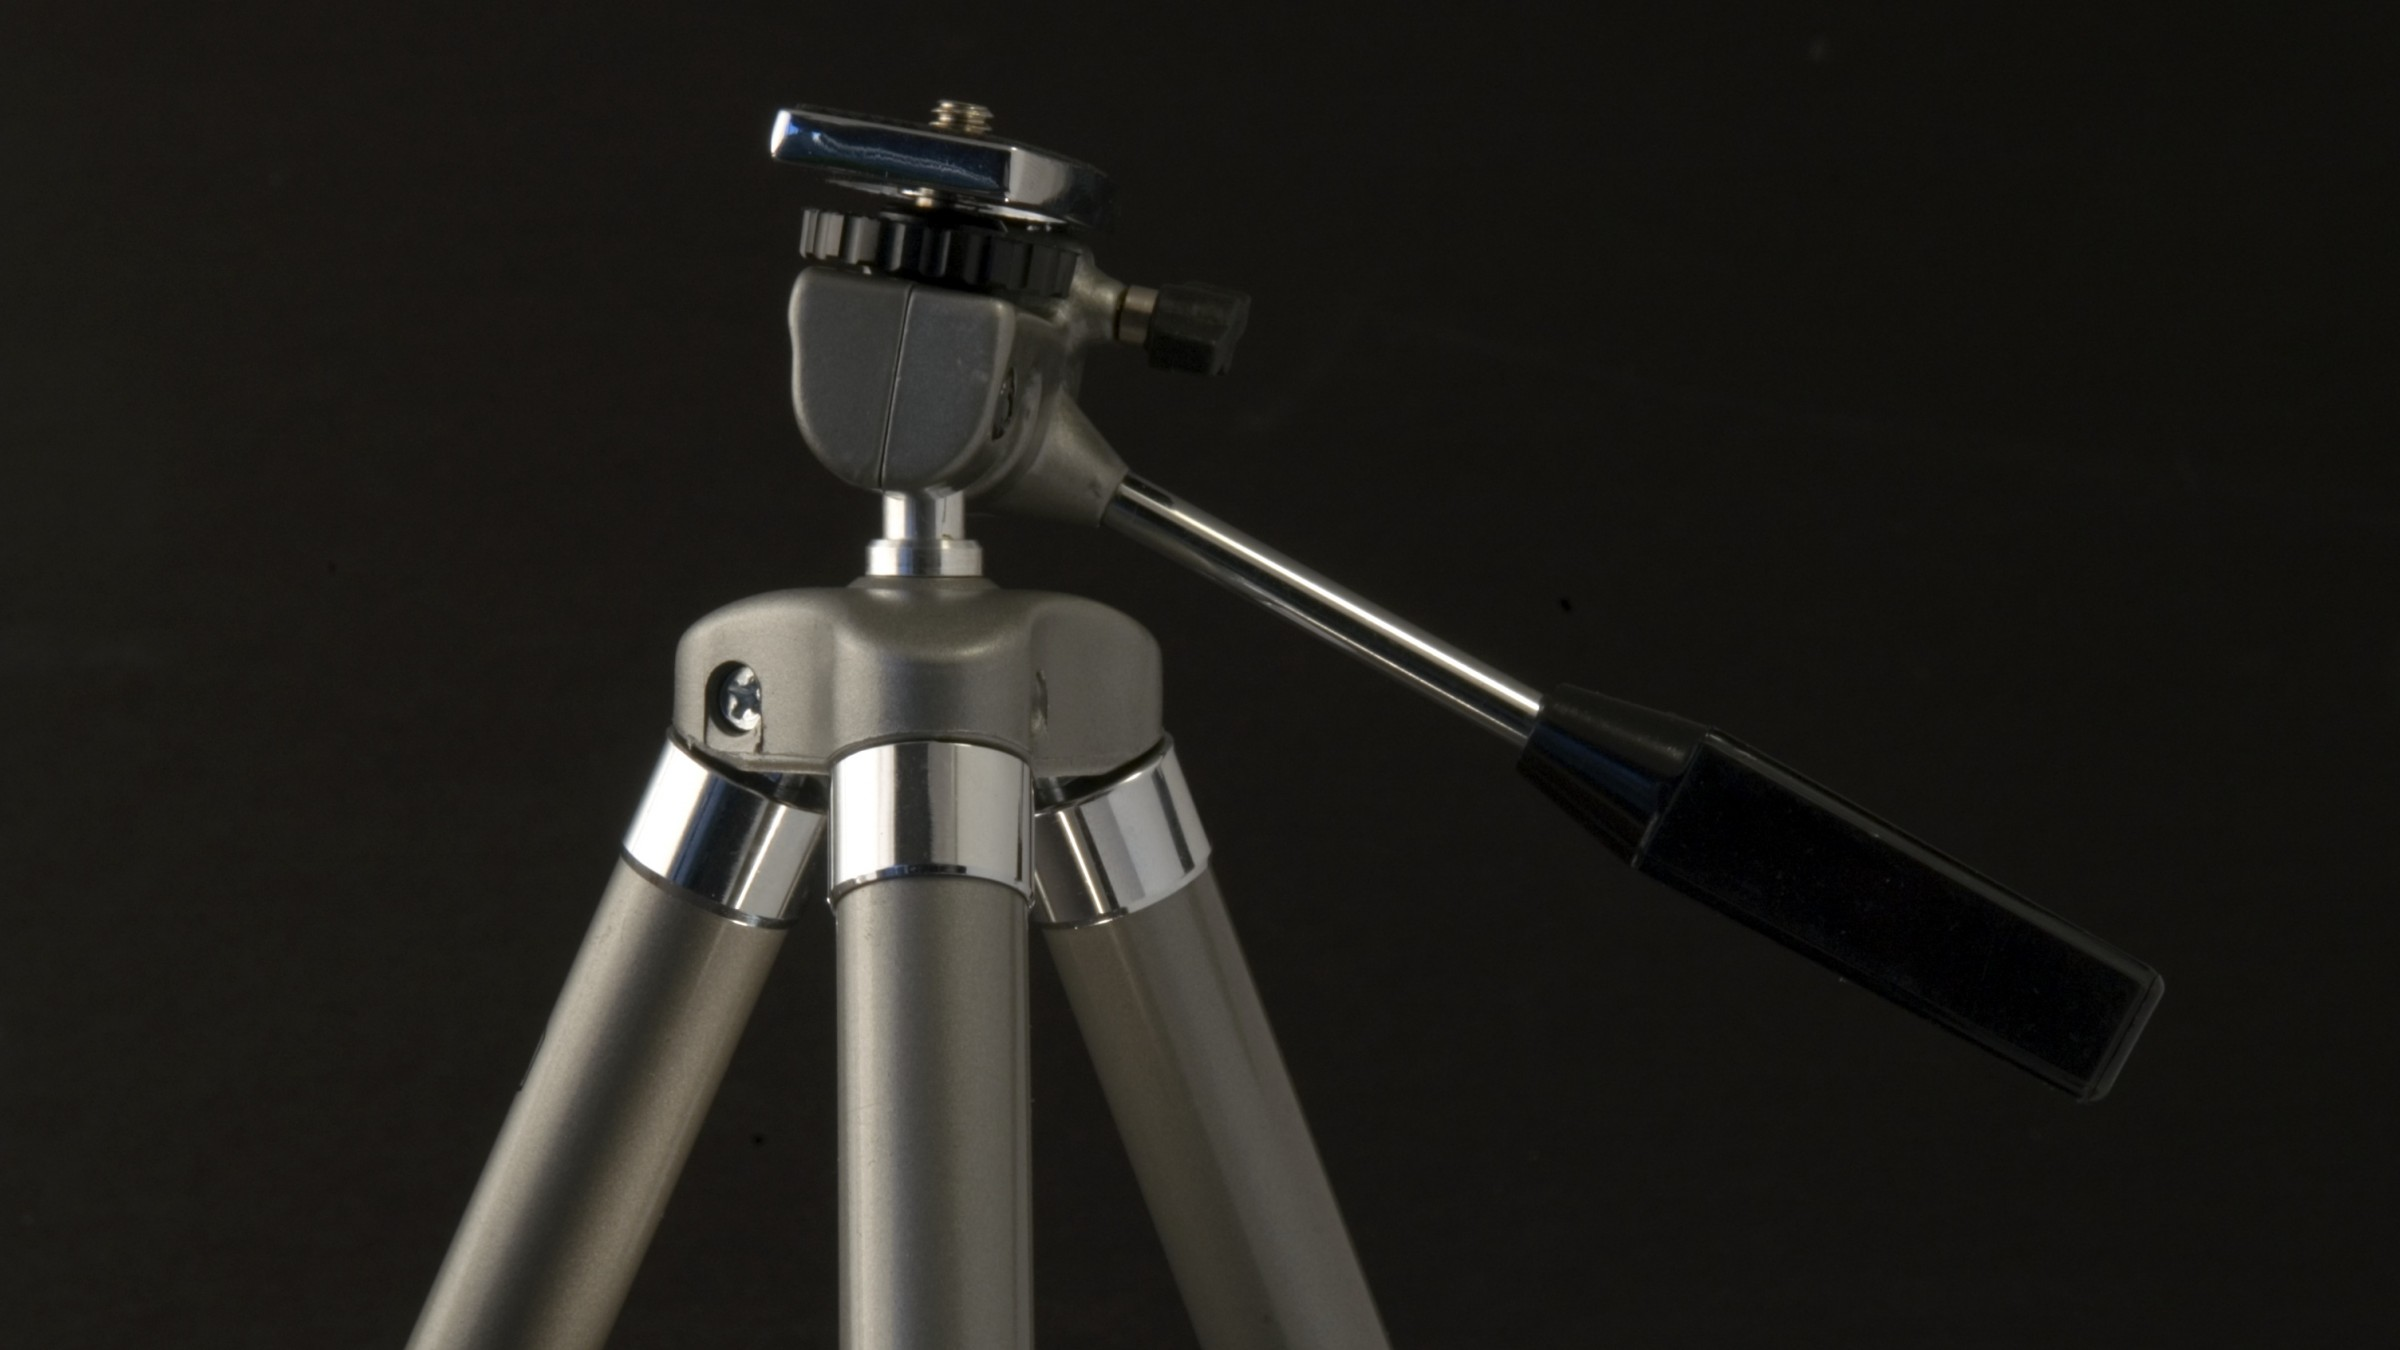 Need to Store Your Tripods & C-Stands? This is a Great, Cheap DIY Solution